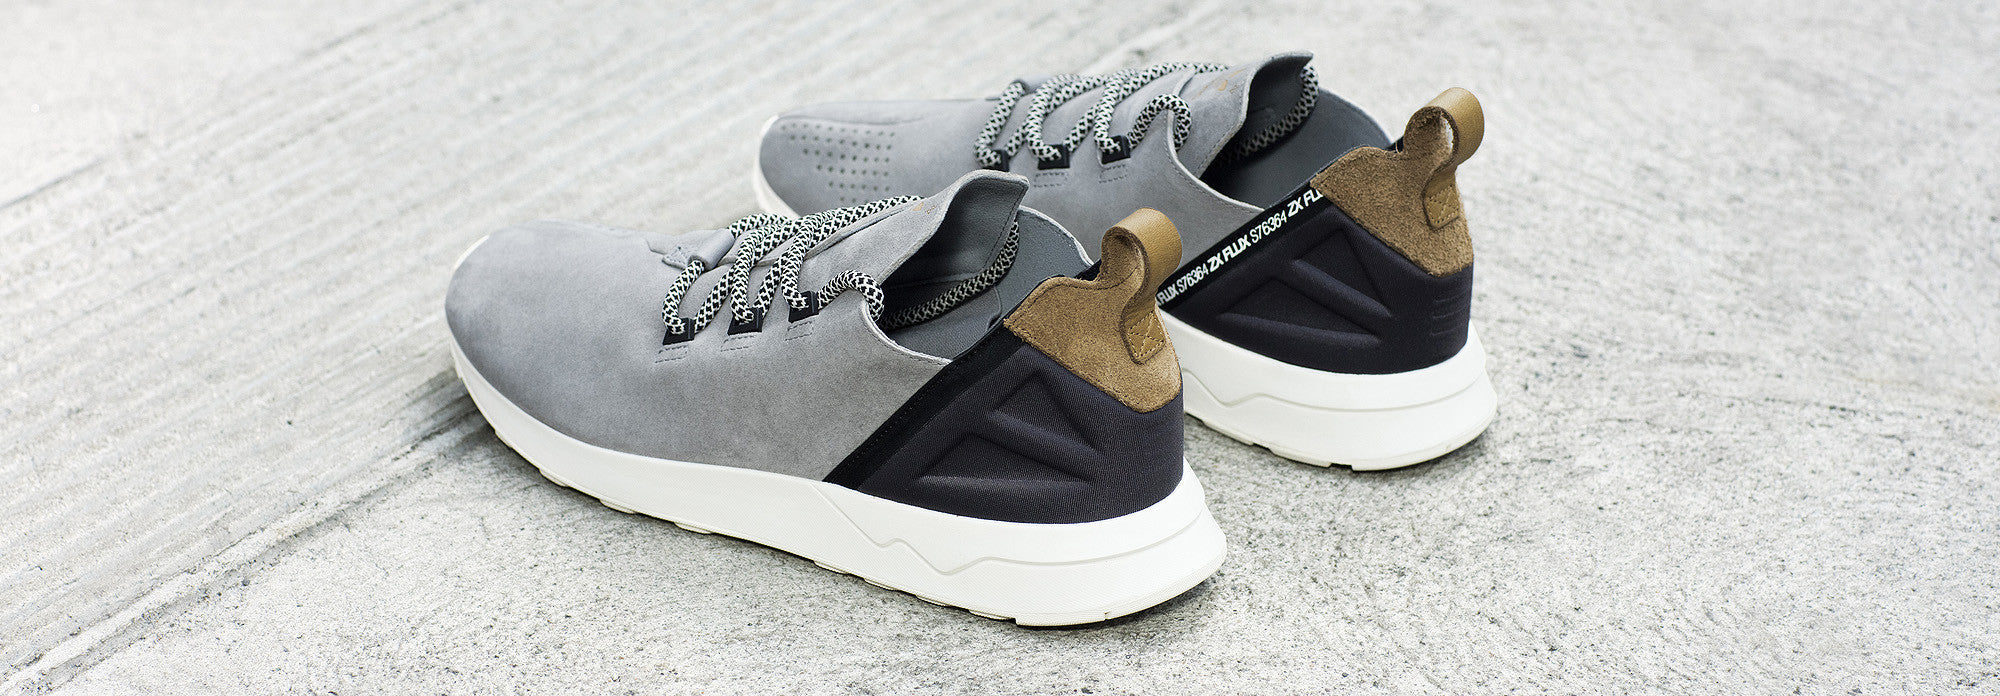 reputable site d9bd3 3fe3c free shipping adidas originals zx flux adv x 525b4 68ebe